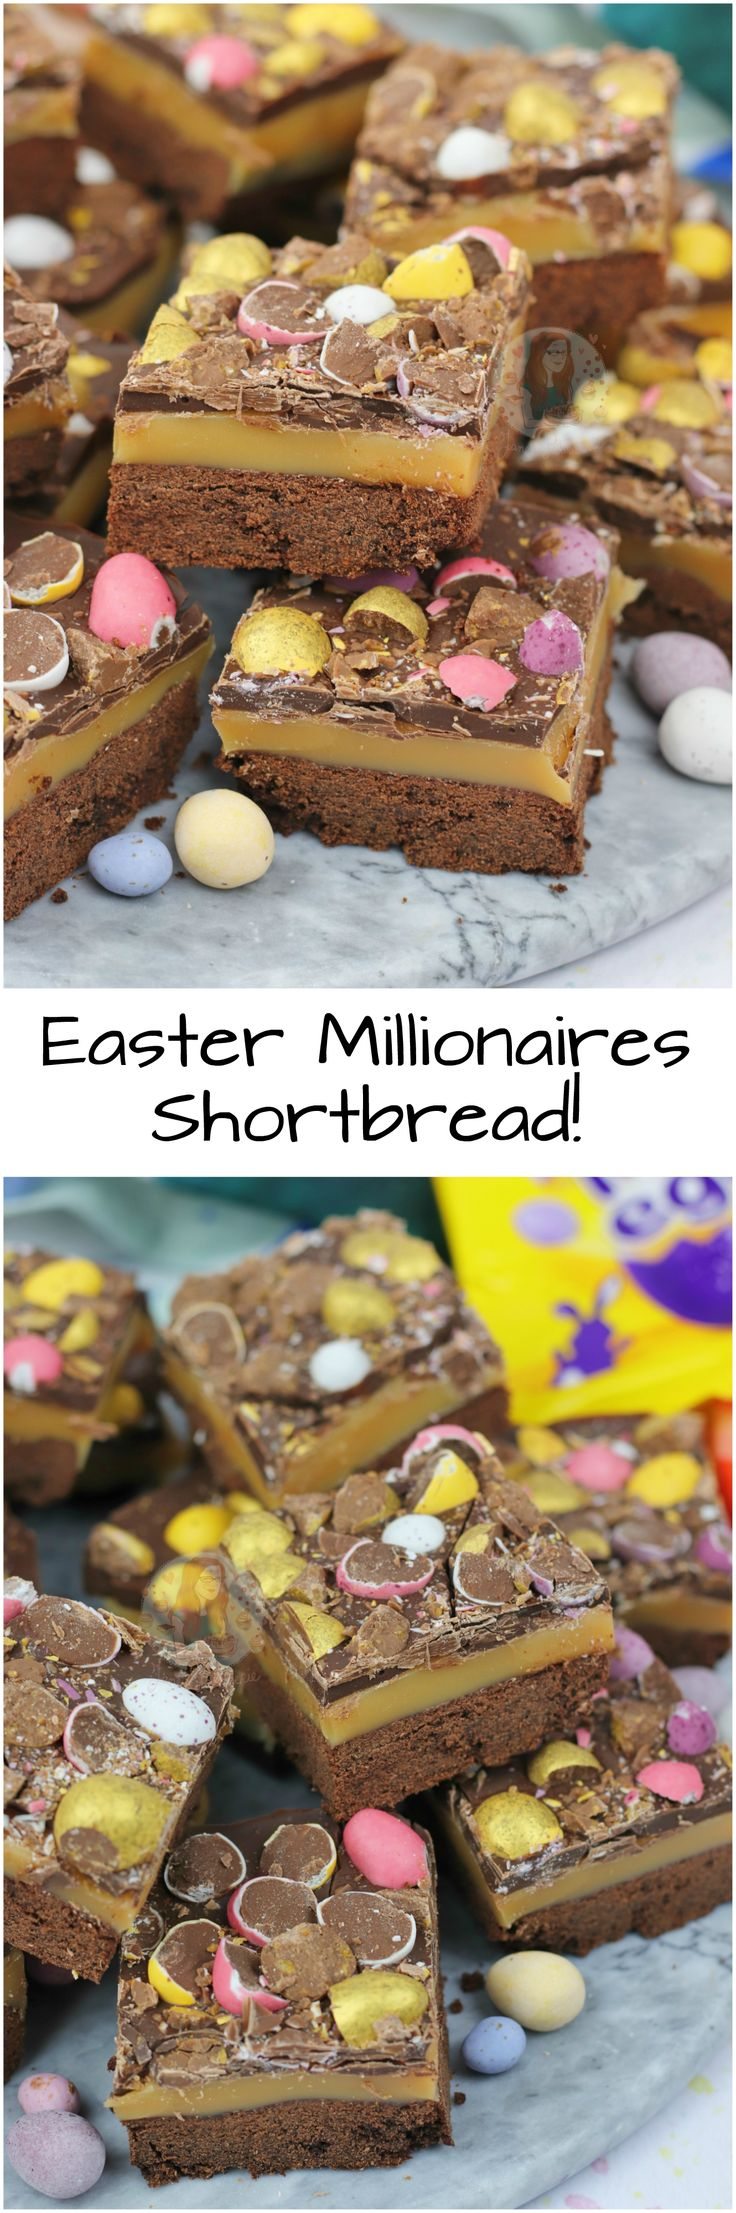 Buttery Chocolate Shortbread, Homemade Caramel, Milk Chocolate, and Easter Treats make the most delicious Easter Chocolate Millionaires Shortbread!